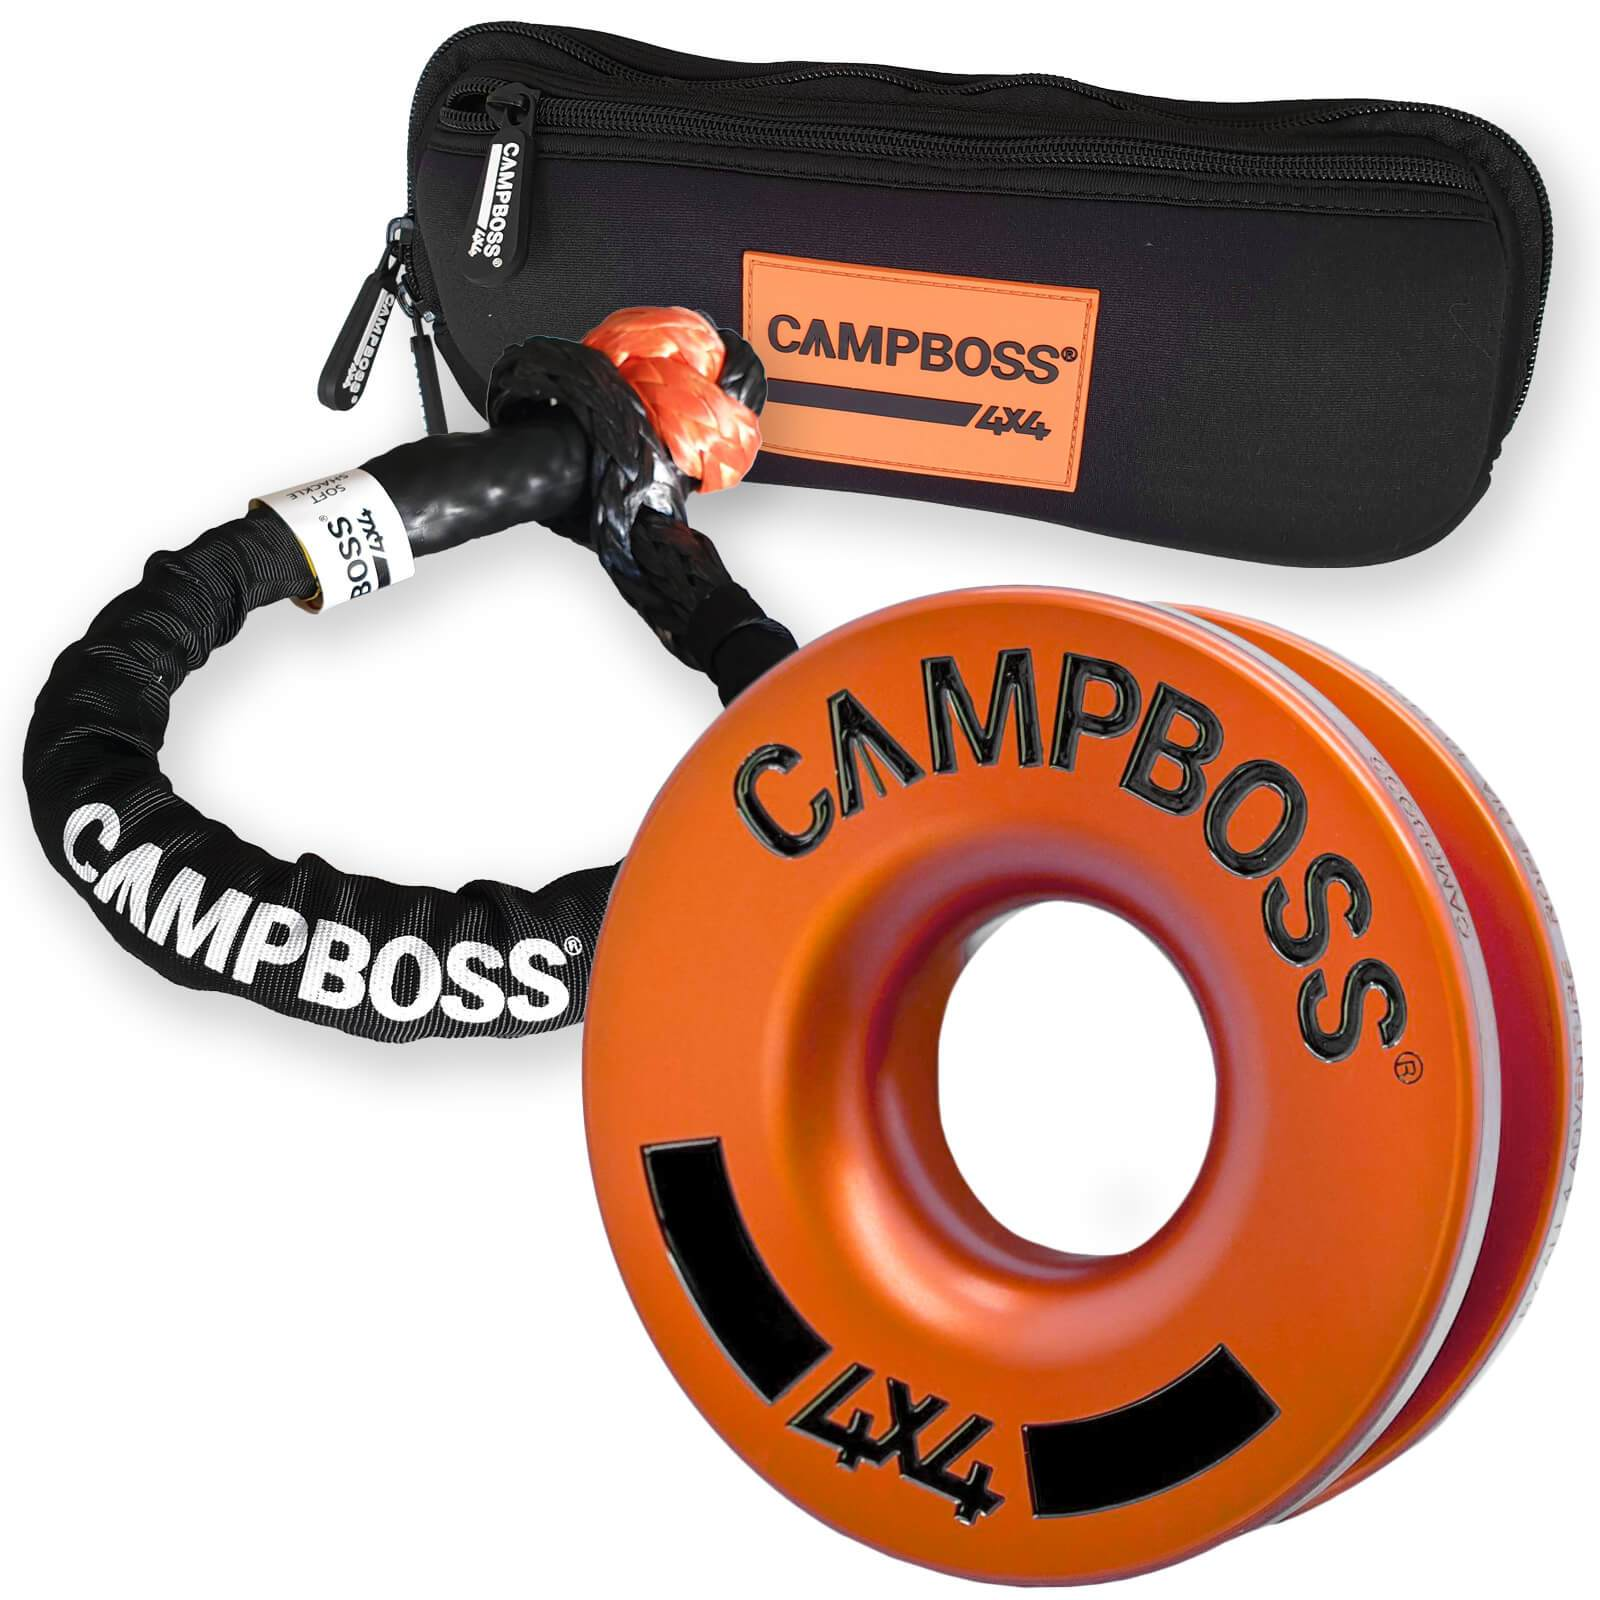 CampBoss-4X4-Boss-Ring-with-pouch_1024x1024@2x